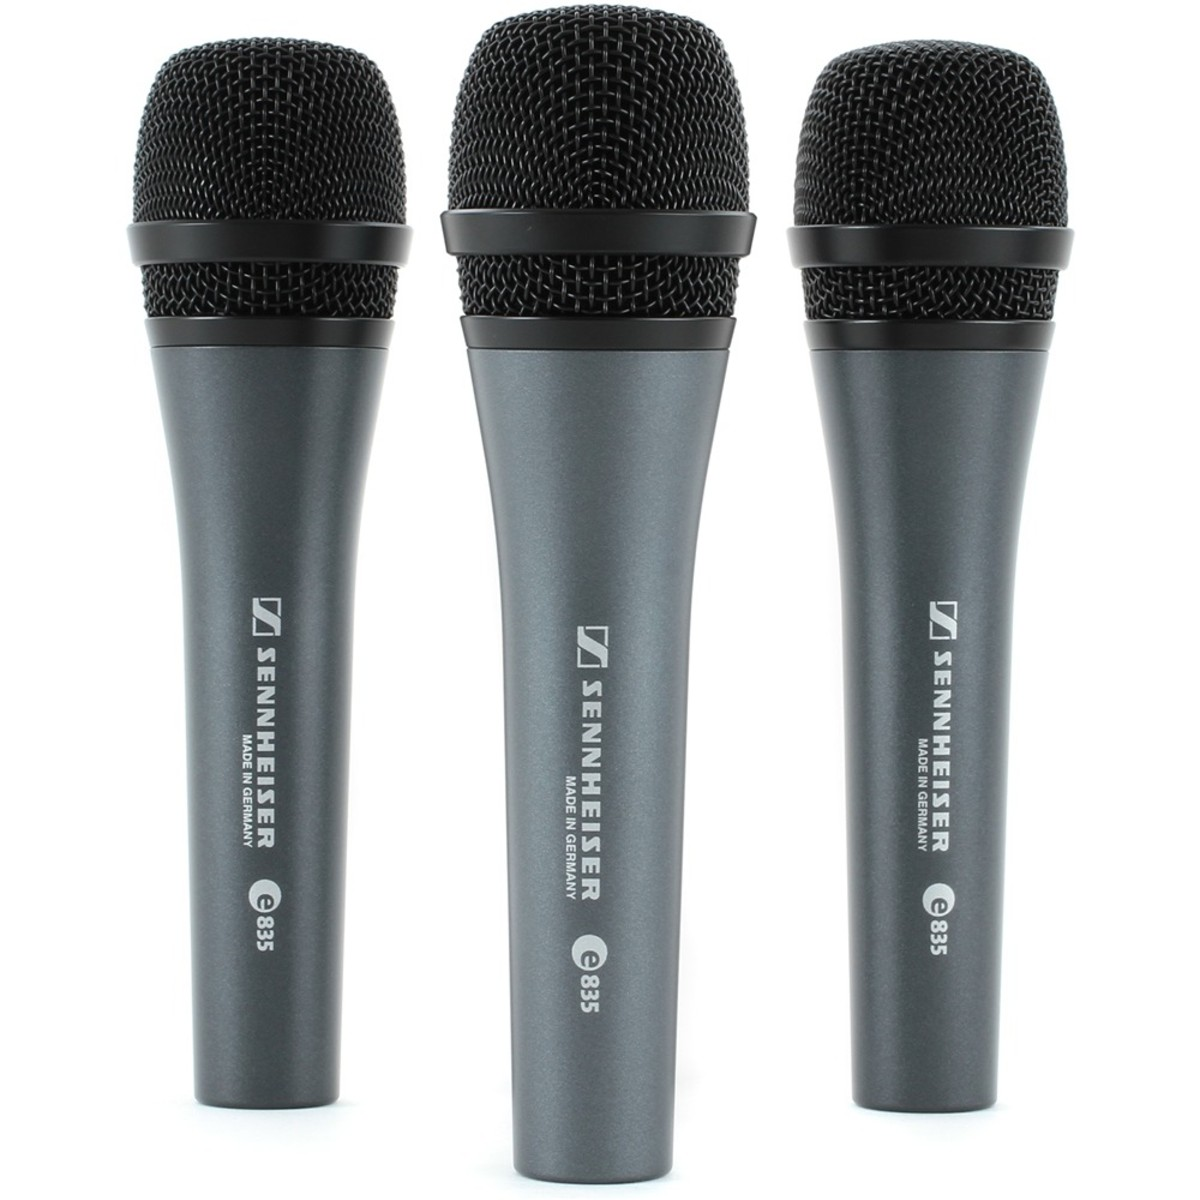 Click to view product details and reviews for Sennheiser E835 Cardioid Vocal Mic 3 Pack.